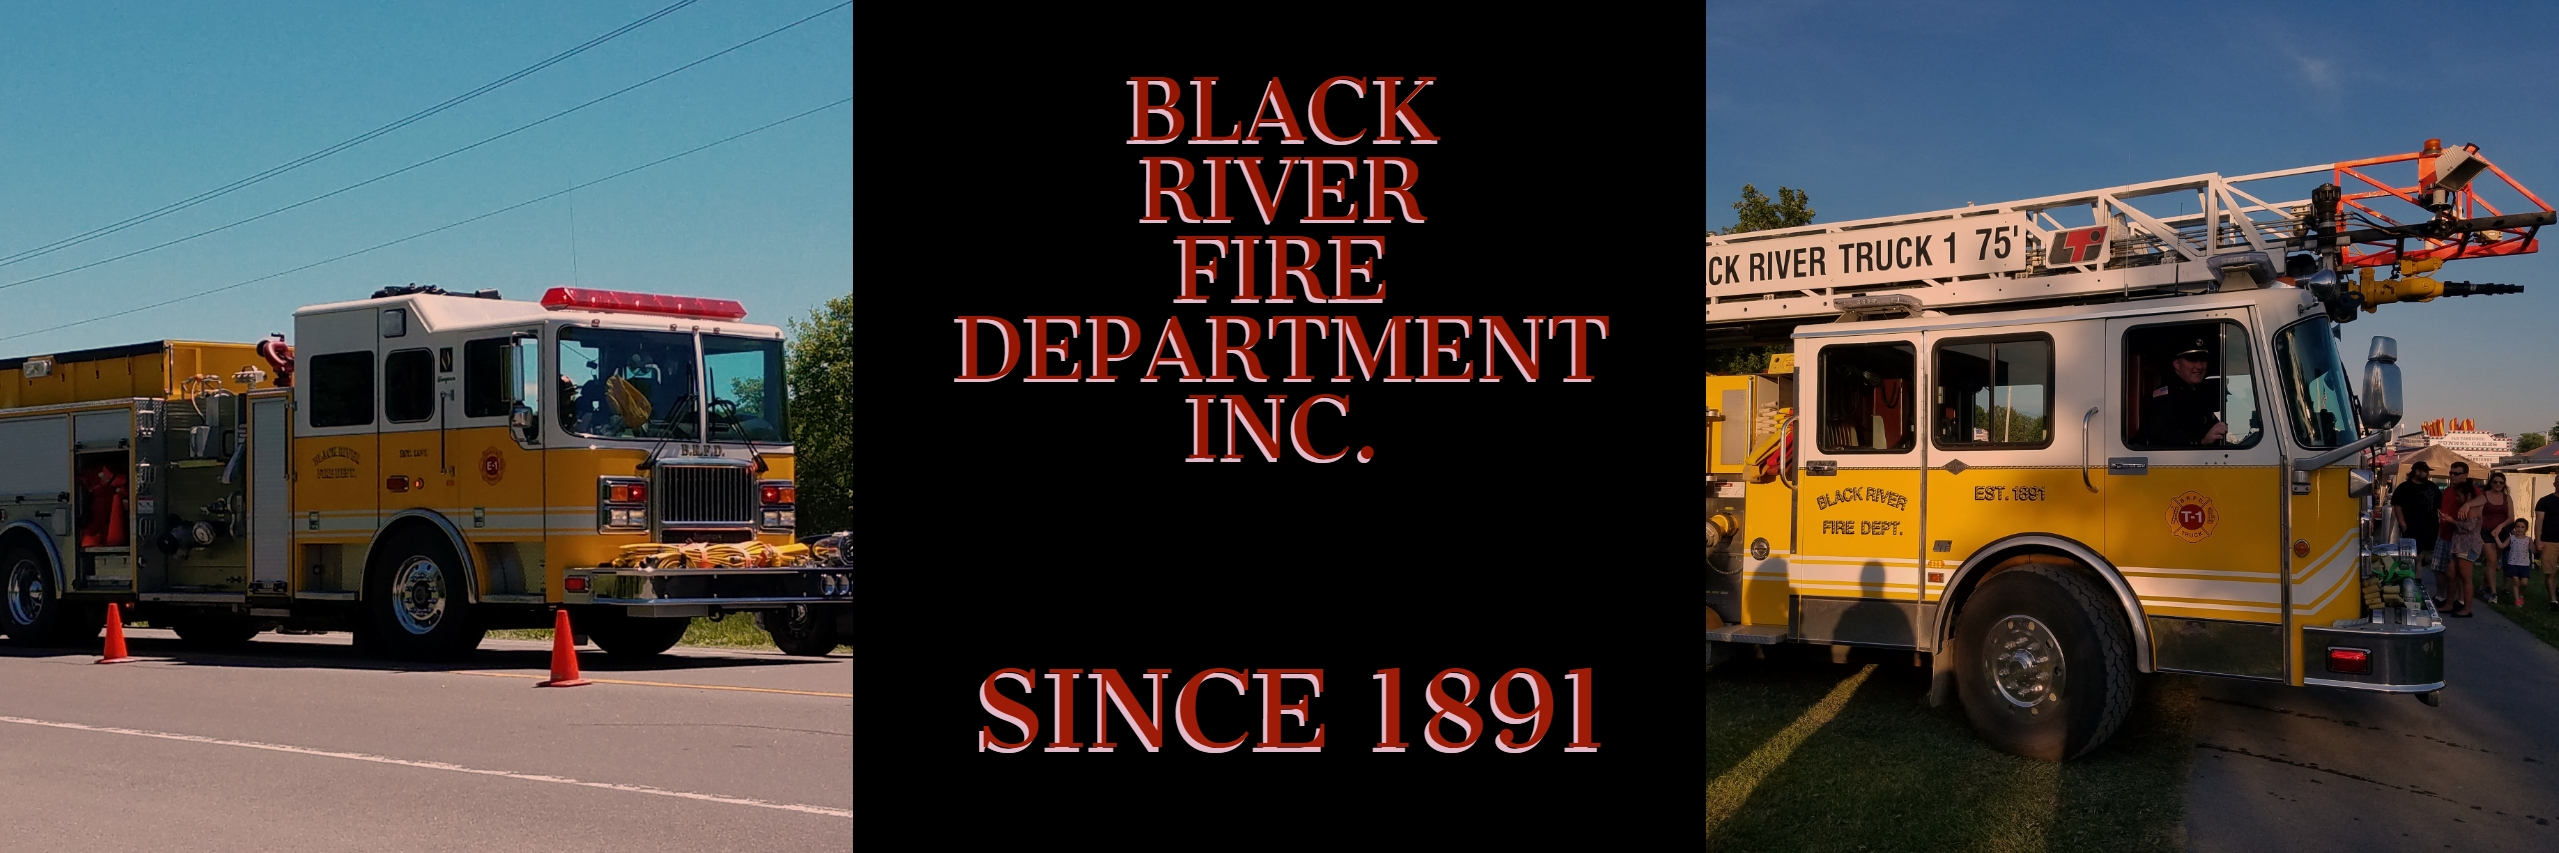 Black River Fire Department Inc.